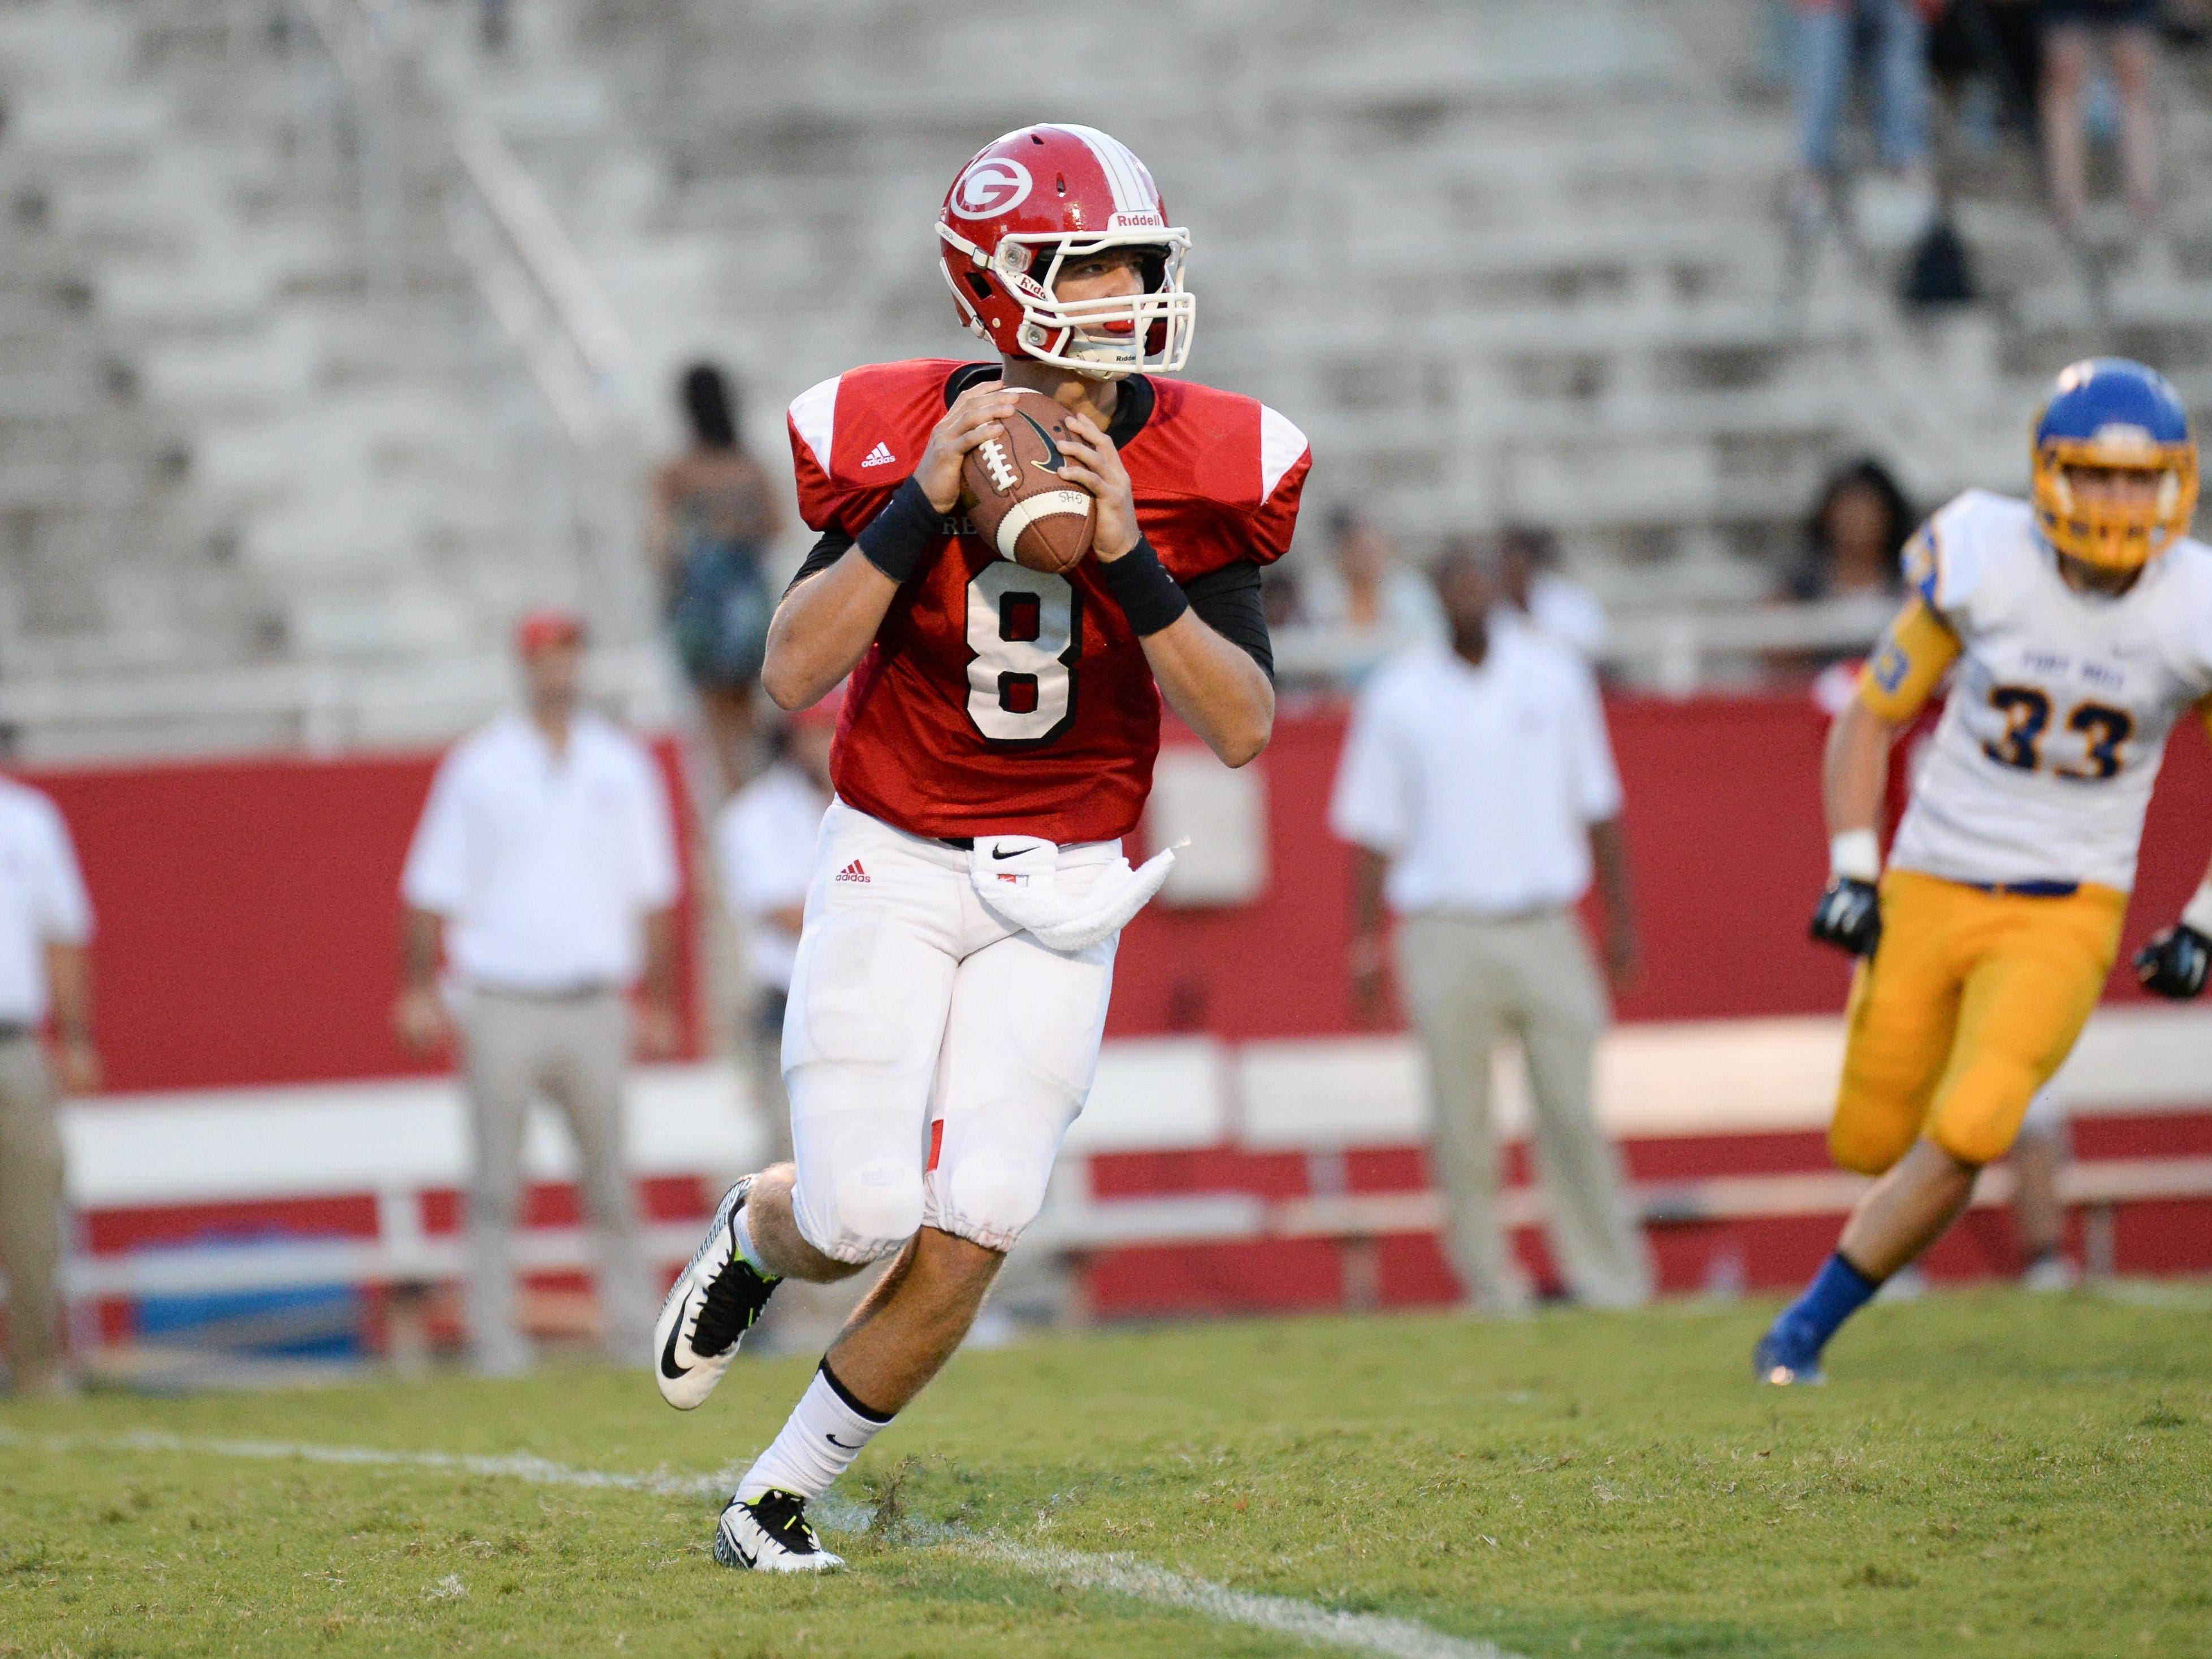 Greenville's Carson Spiers (8) passed for 288 yards with three touchdowns against Fort Mill on Friday.